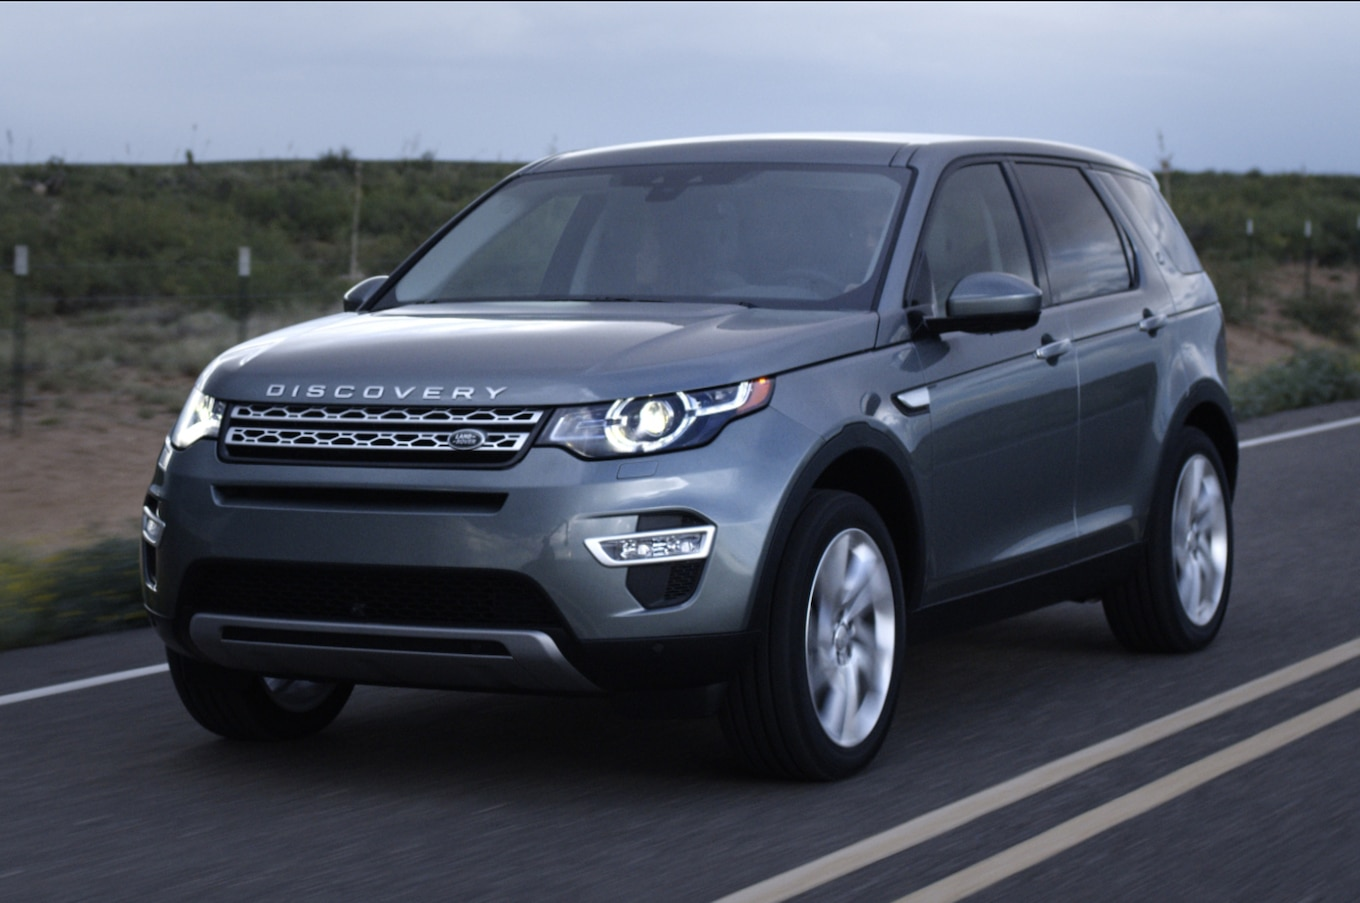 Land Rover Cars Convertible SUV Crossover Reviews & Prices